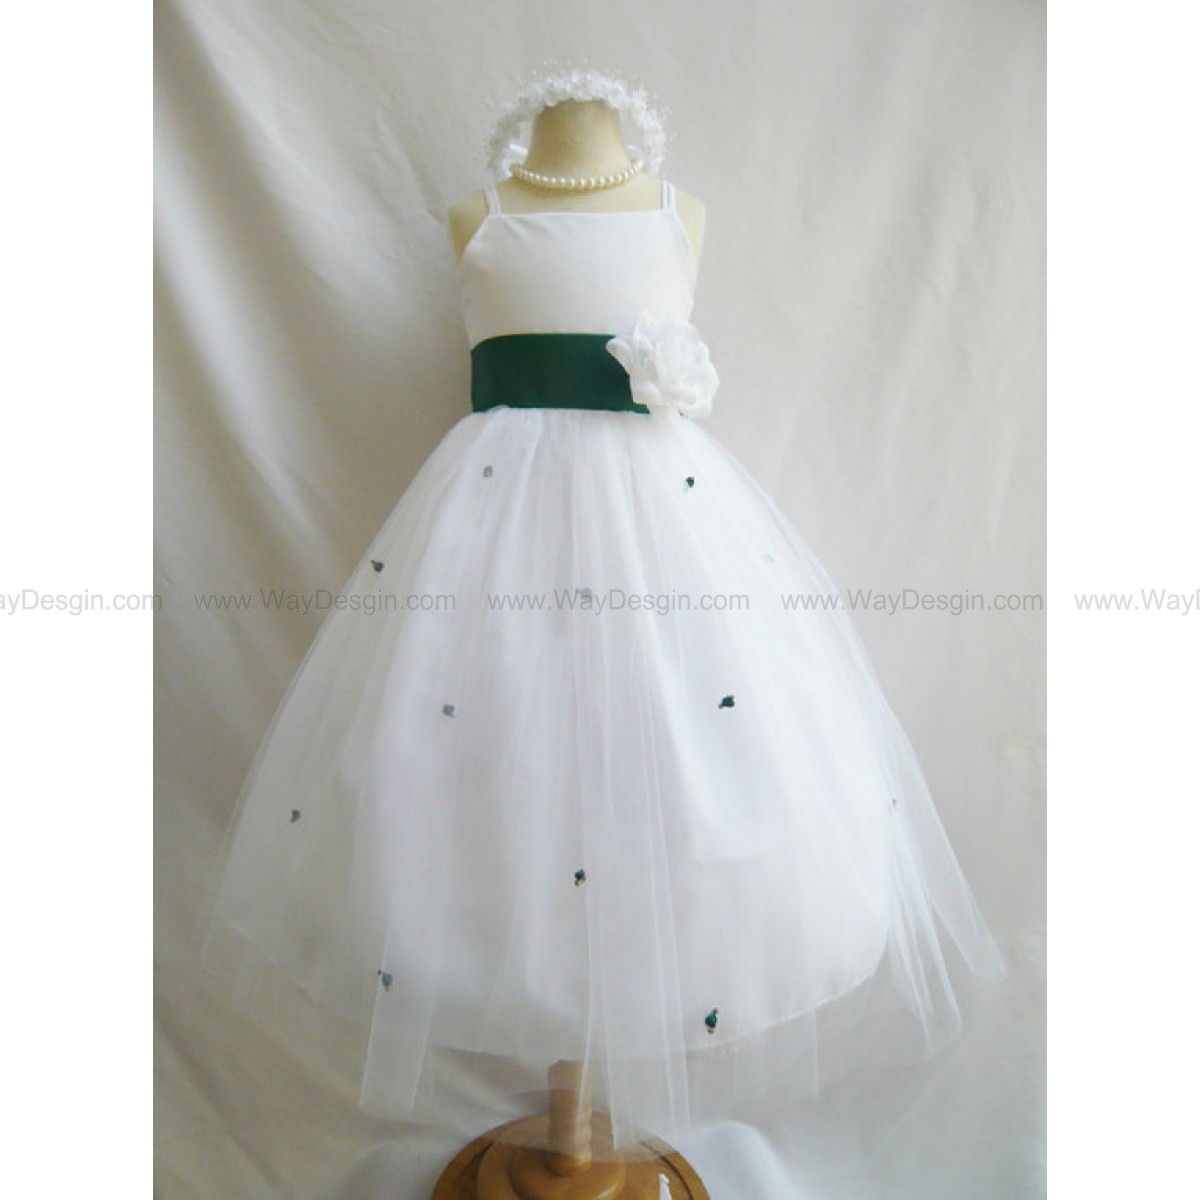 Flower Girl Dress - WHITE Tulle Dress with Green HUNTER Sash and Rosebuds - Easter, Jr. Bridesmaid, Wedding - Baby to Teen